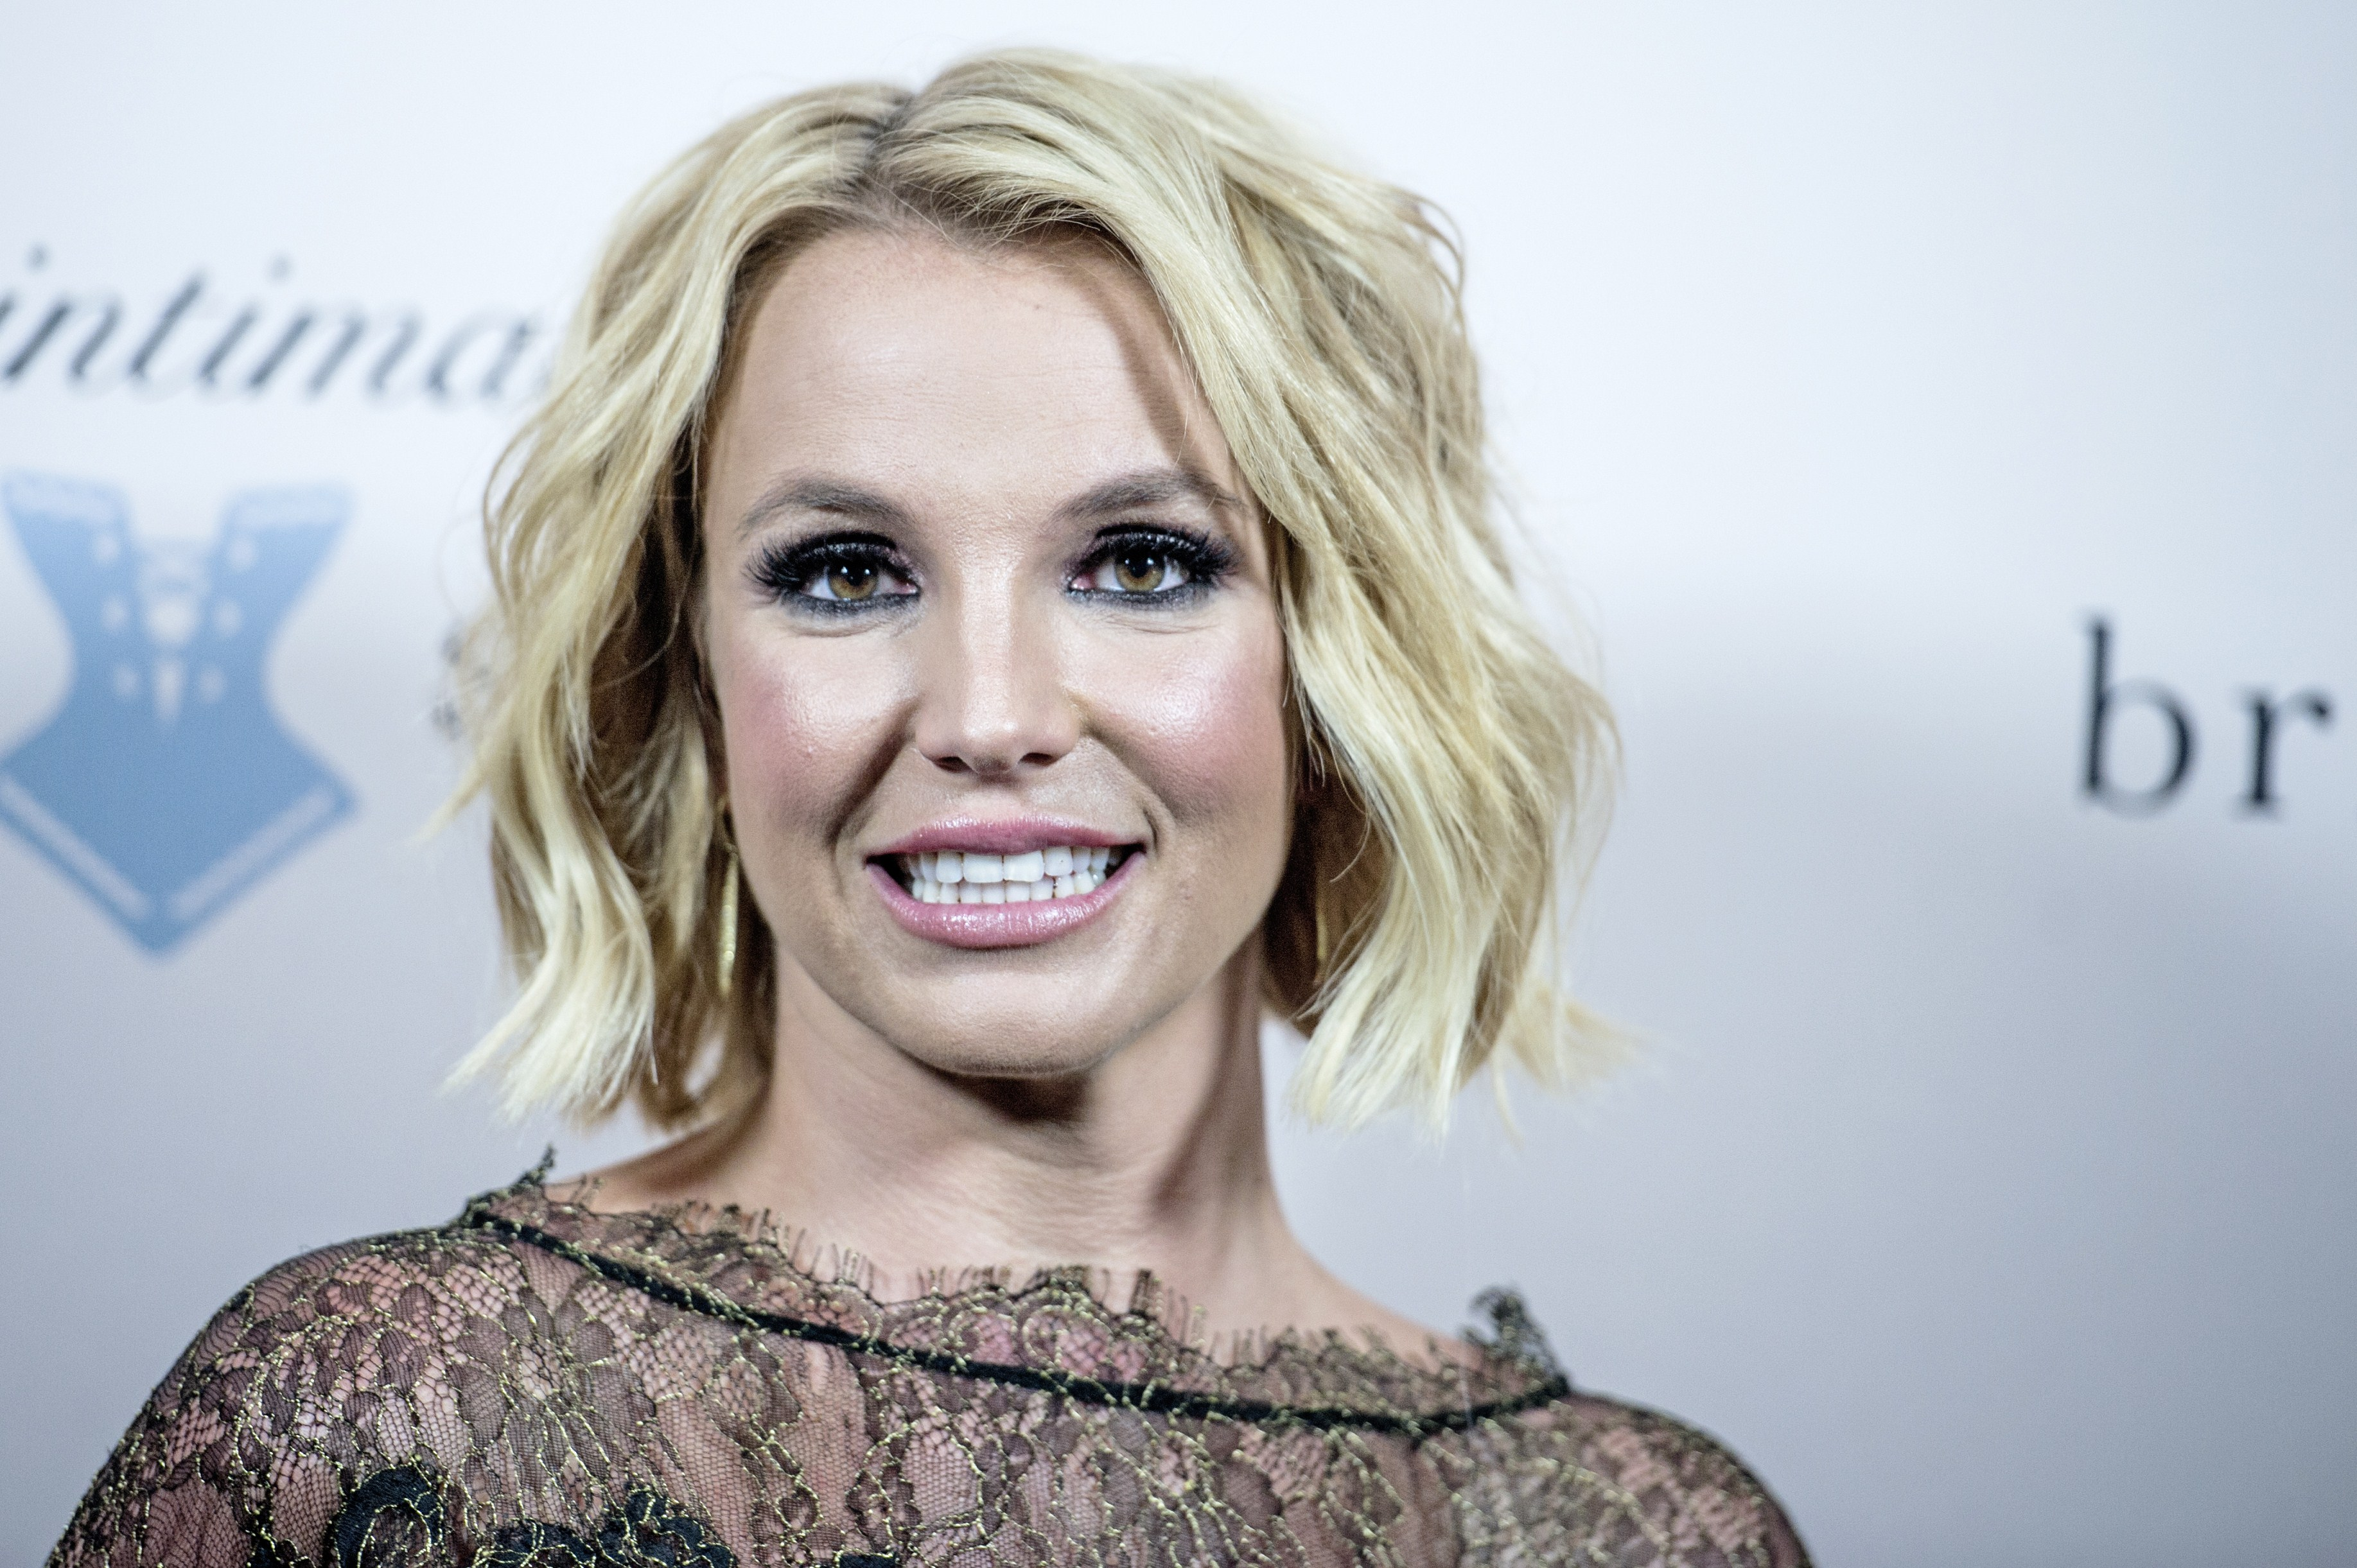 US singer Britney Spears attends the launch of her new lingerie brand The Intimate Britney Spears at The Forum in Copenhagen on September 25, 2014. AFP PHOTO/SCANPIX DENMARK/CHRISTIAN LILIENDAHL == DENMARK OUT == (Photo credit should read Christian Liliendahl/AFP/Getty Images)